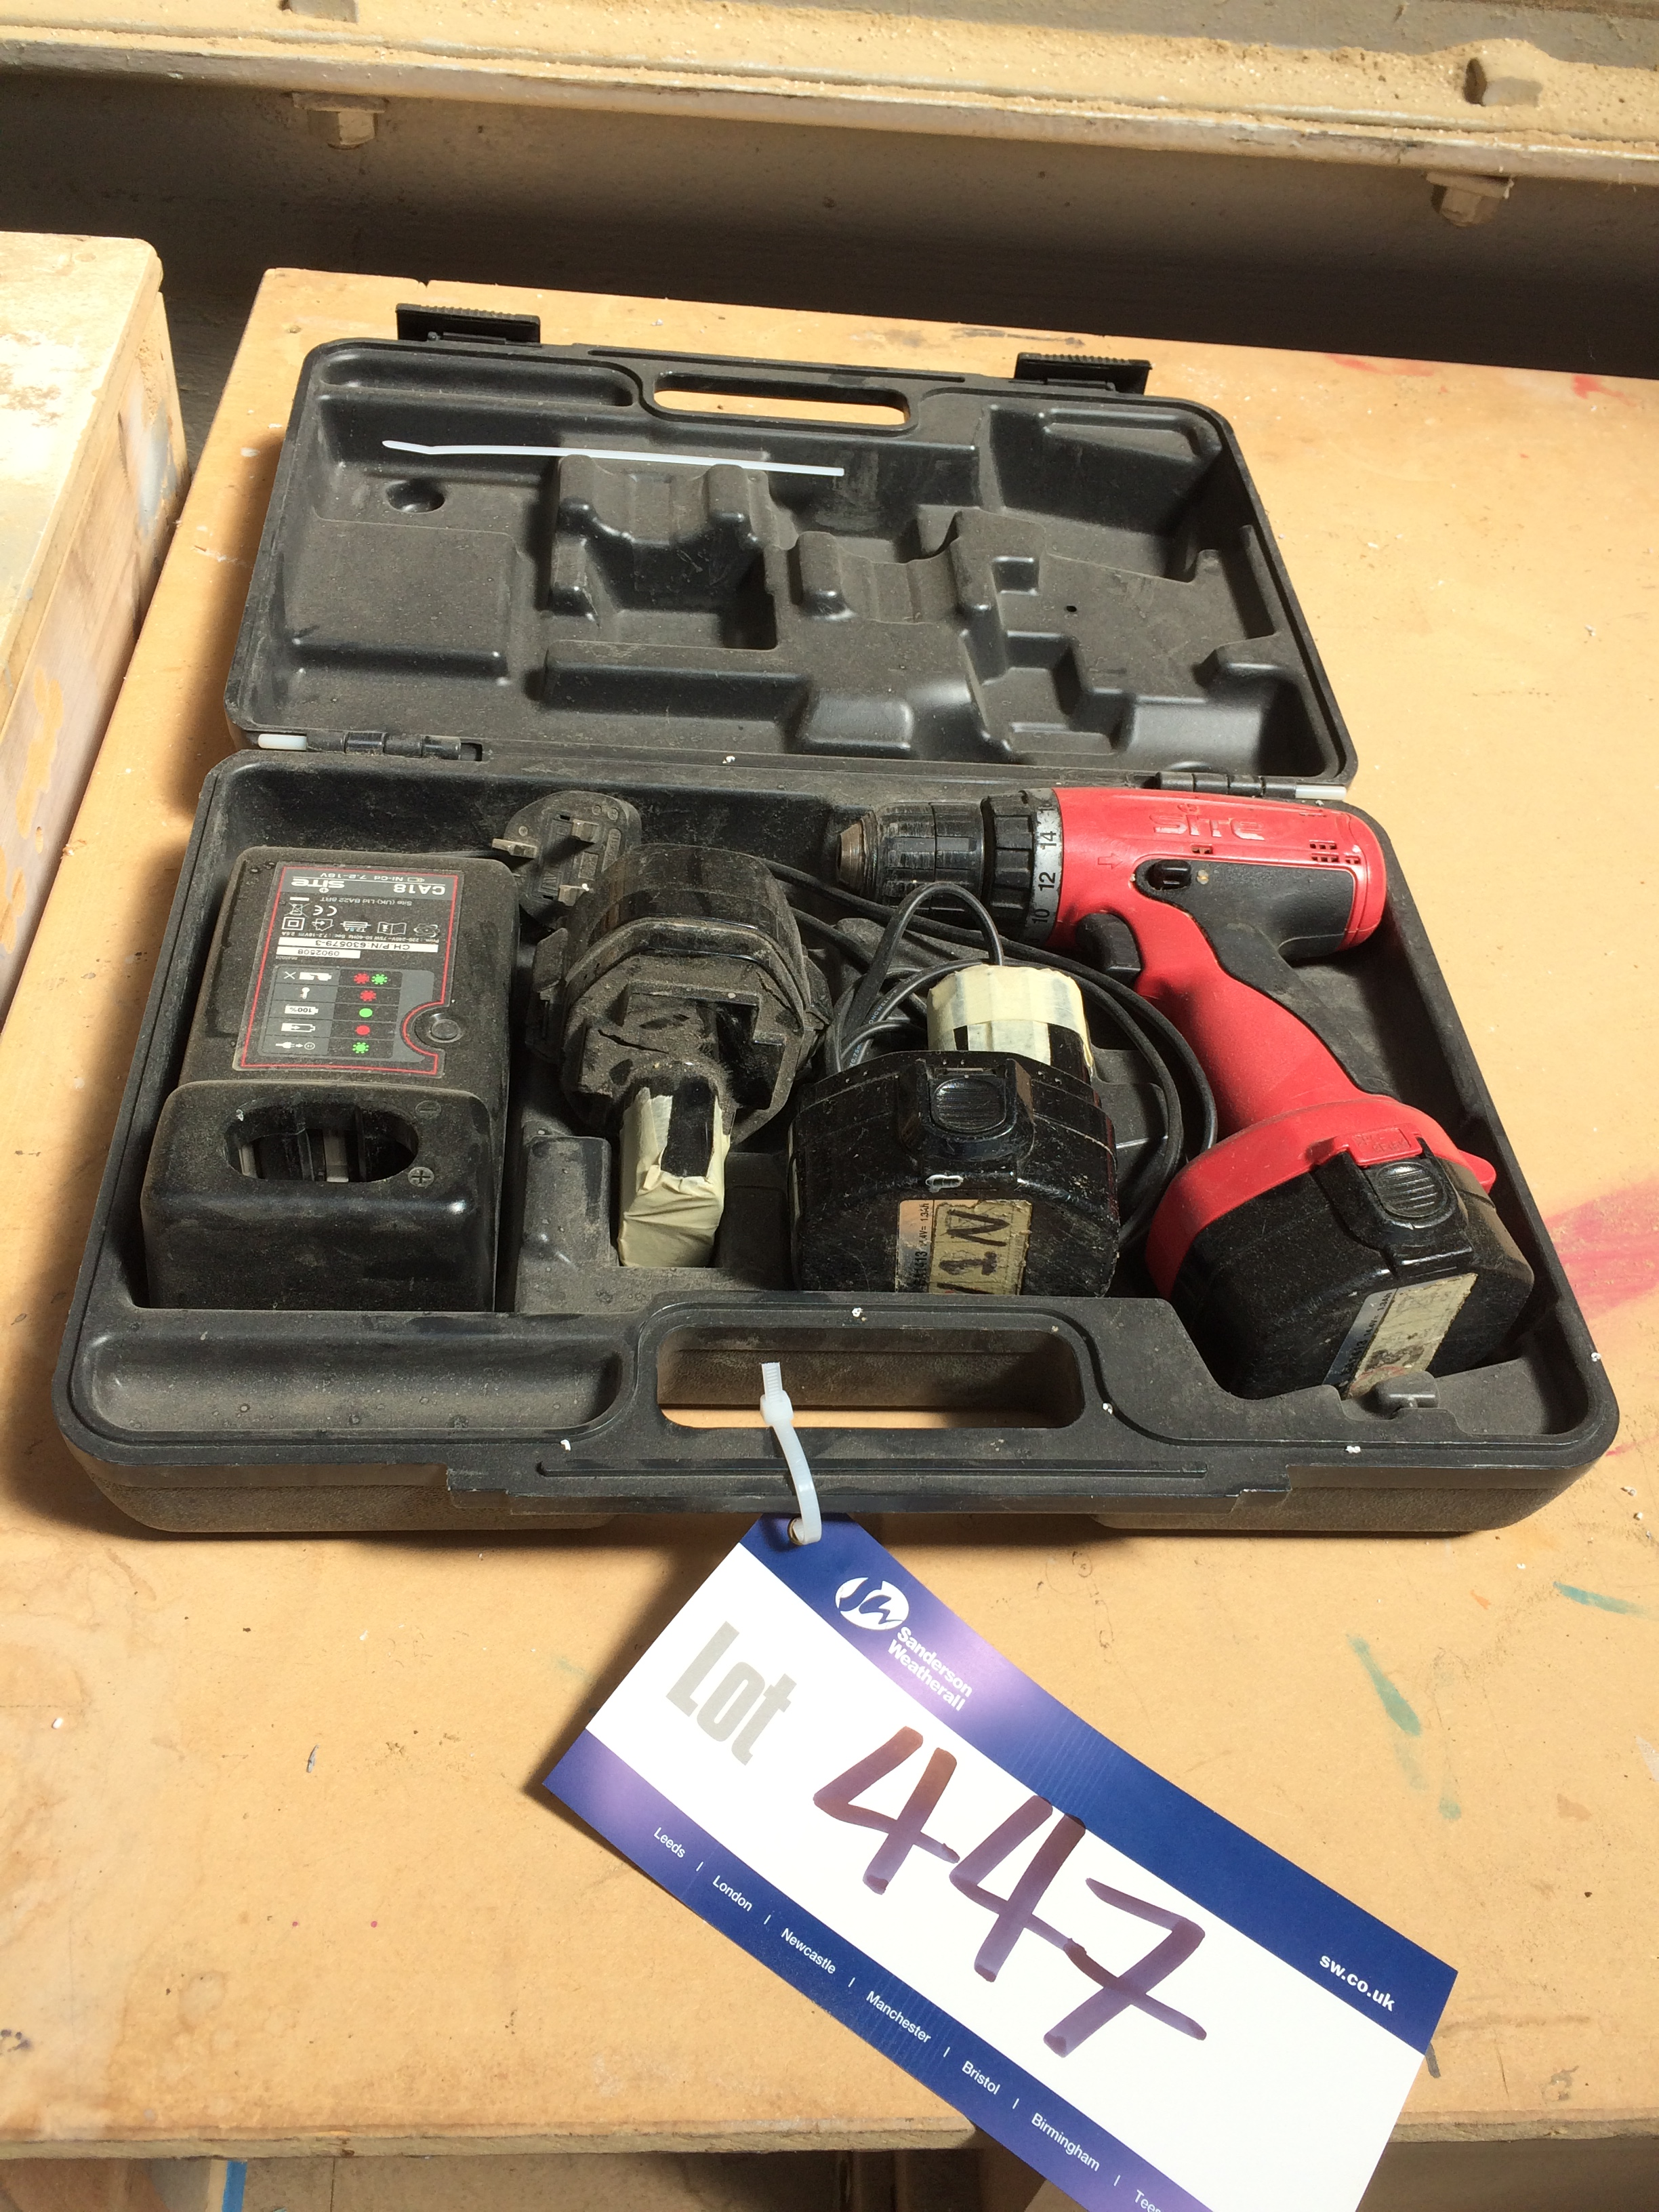 Lot 447 - Site Cordless Drill c/w 2 Batteries and Charger (please note ...